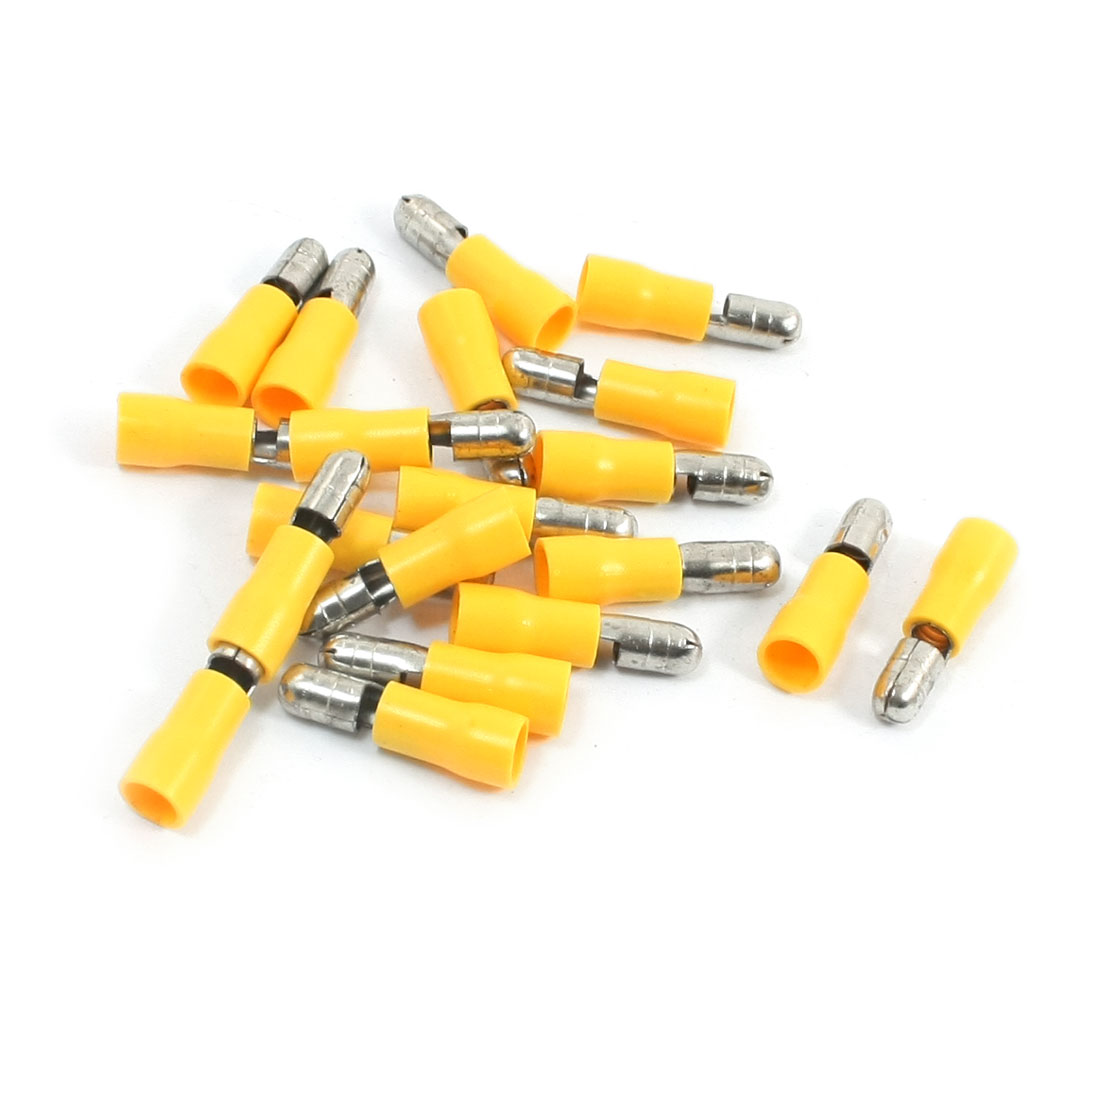 20Pcs 12-10AWG MPD5-195 Yellow PVC Sleeve Insulated 5mm Cable Terminals Crimp